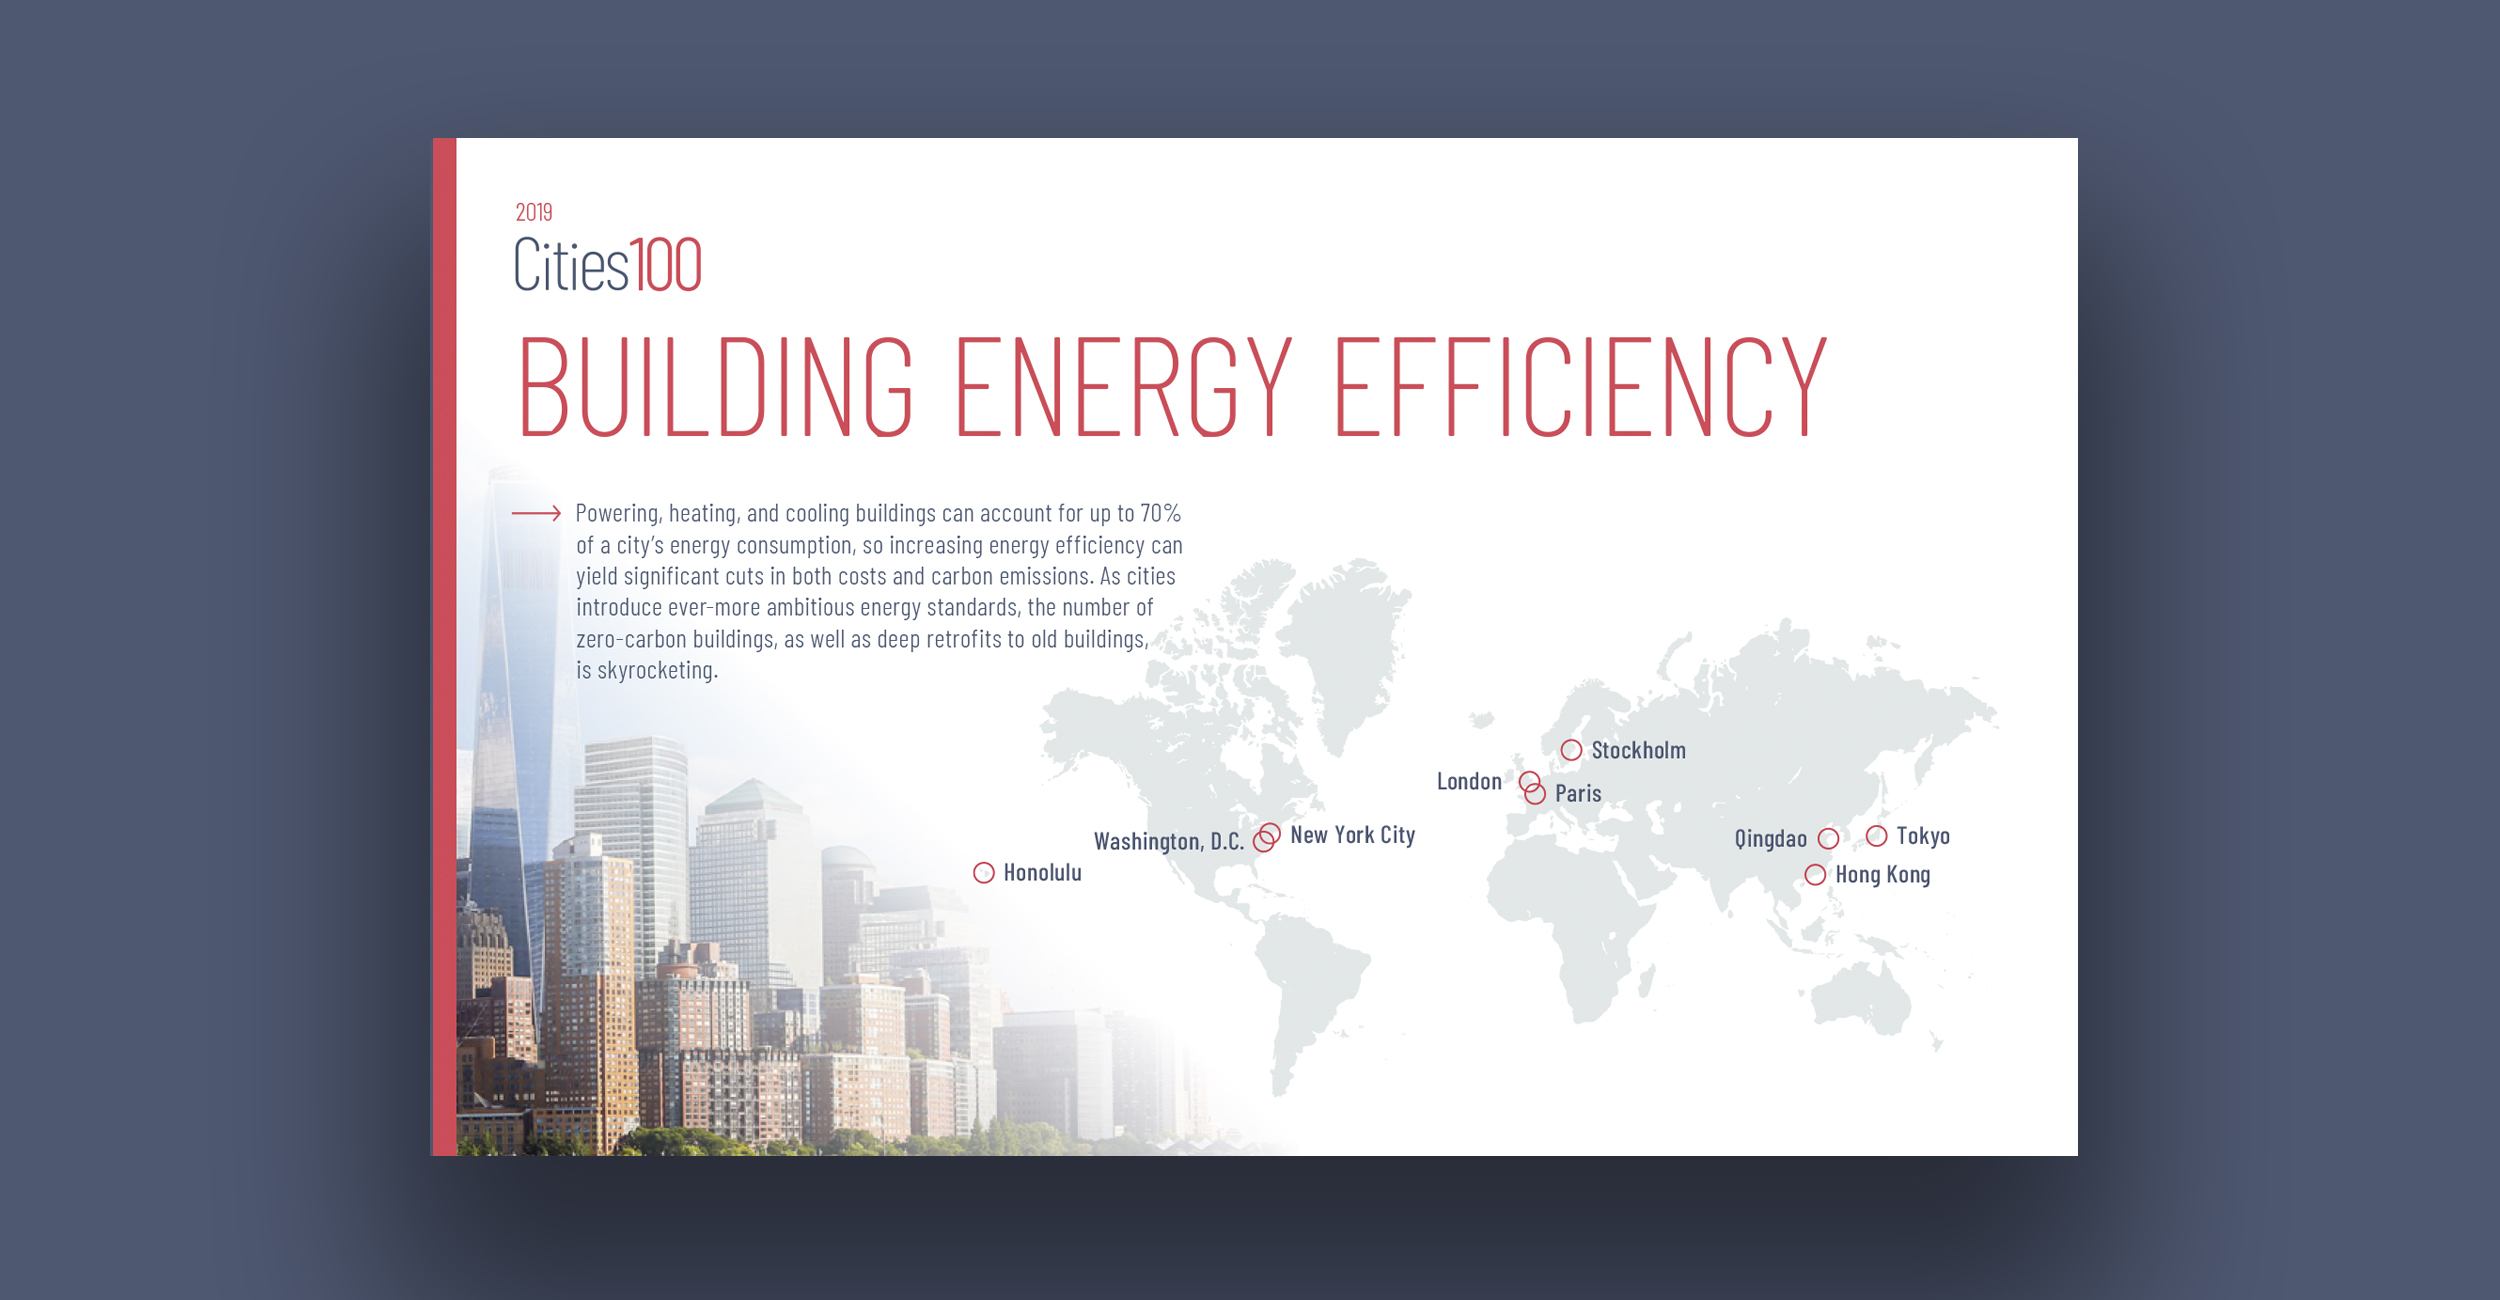 Building Energy Efficiency - Powering, heating, and cooling buildings can account for up to 70% of a city's energy consumption, so increasing energy efficiency can yield significant cuts in both costs and carbon emissions. As cities introduce ever-more ambitious energy standards, the number of zero-carbon buildings, as well as deep retrofits to old buildings, is skyrocketing.